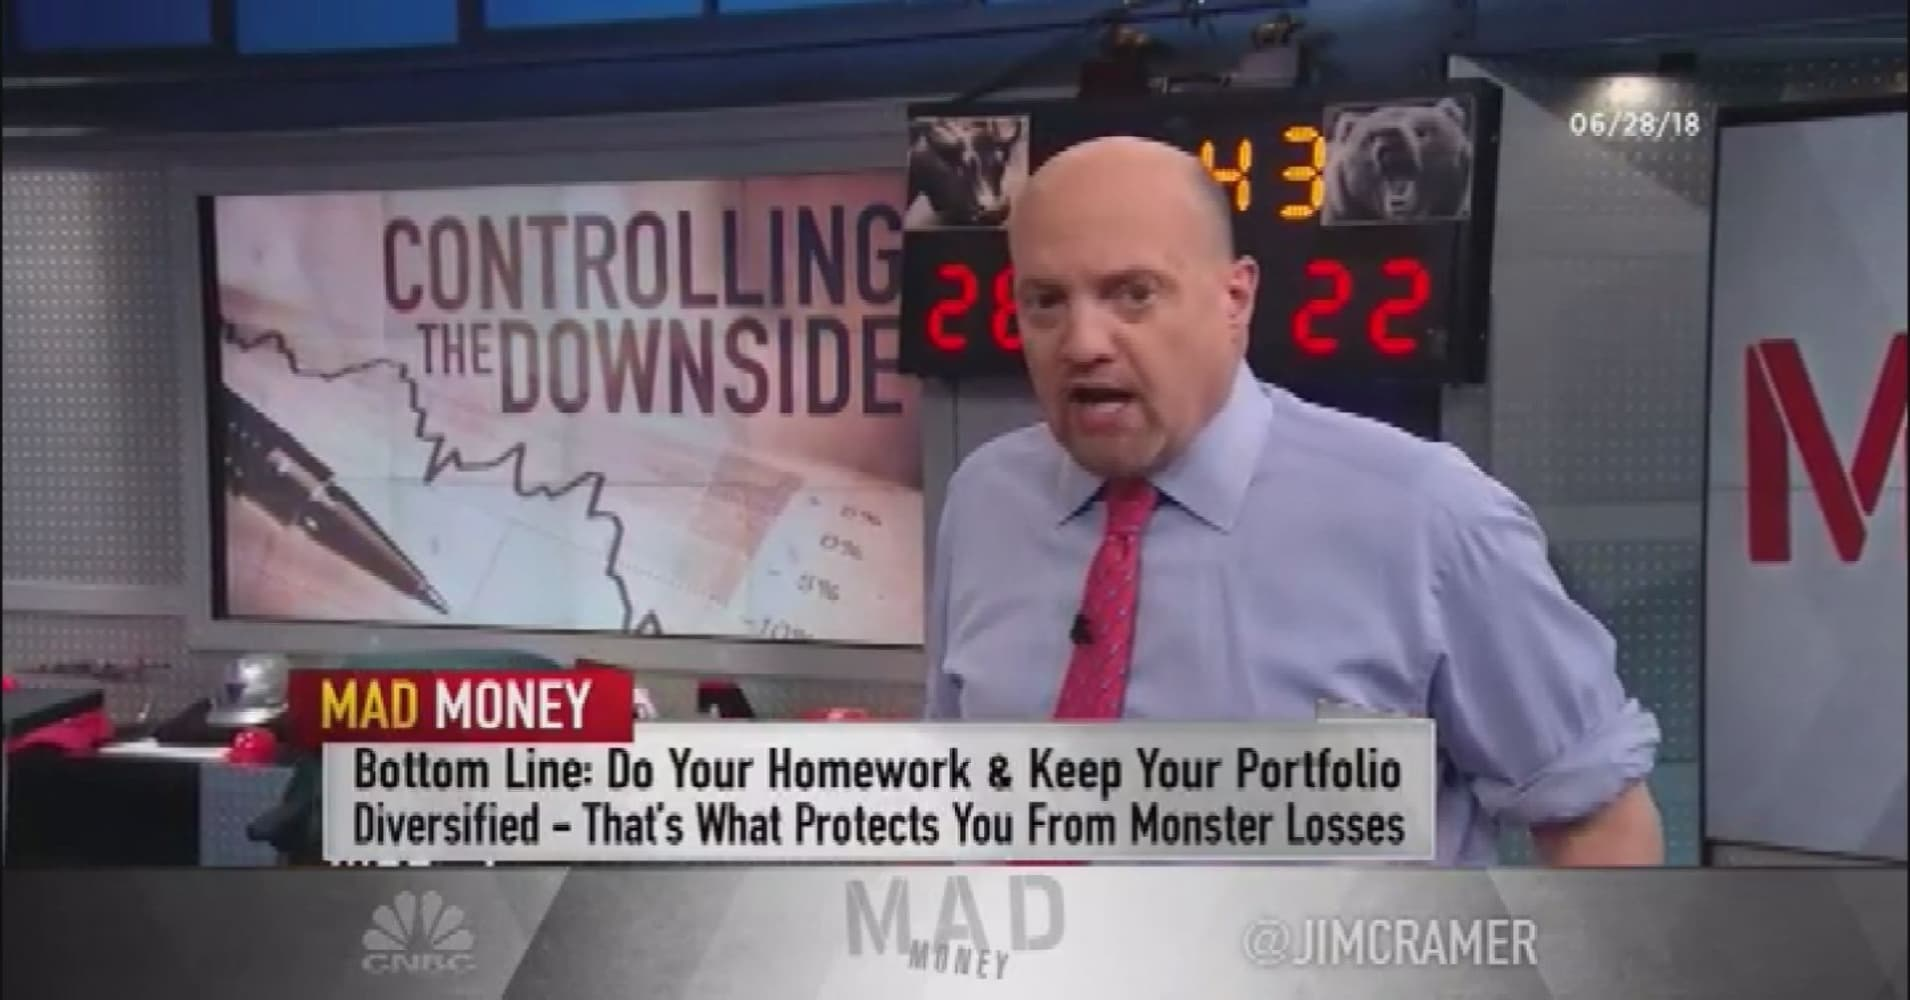 Cramer: It may not be sexy, but investors should always do their homework